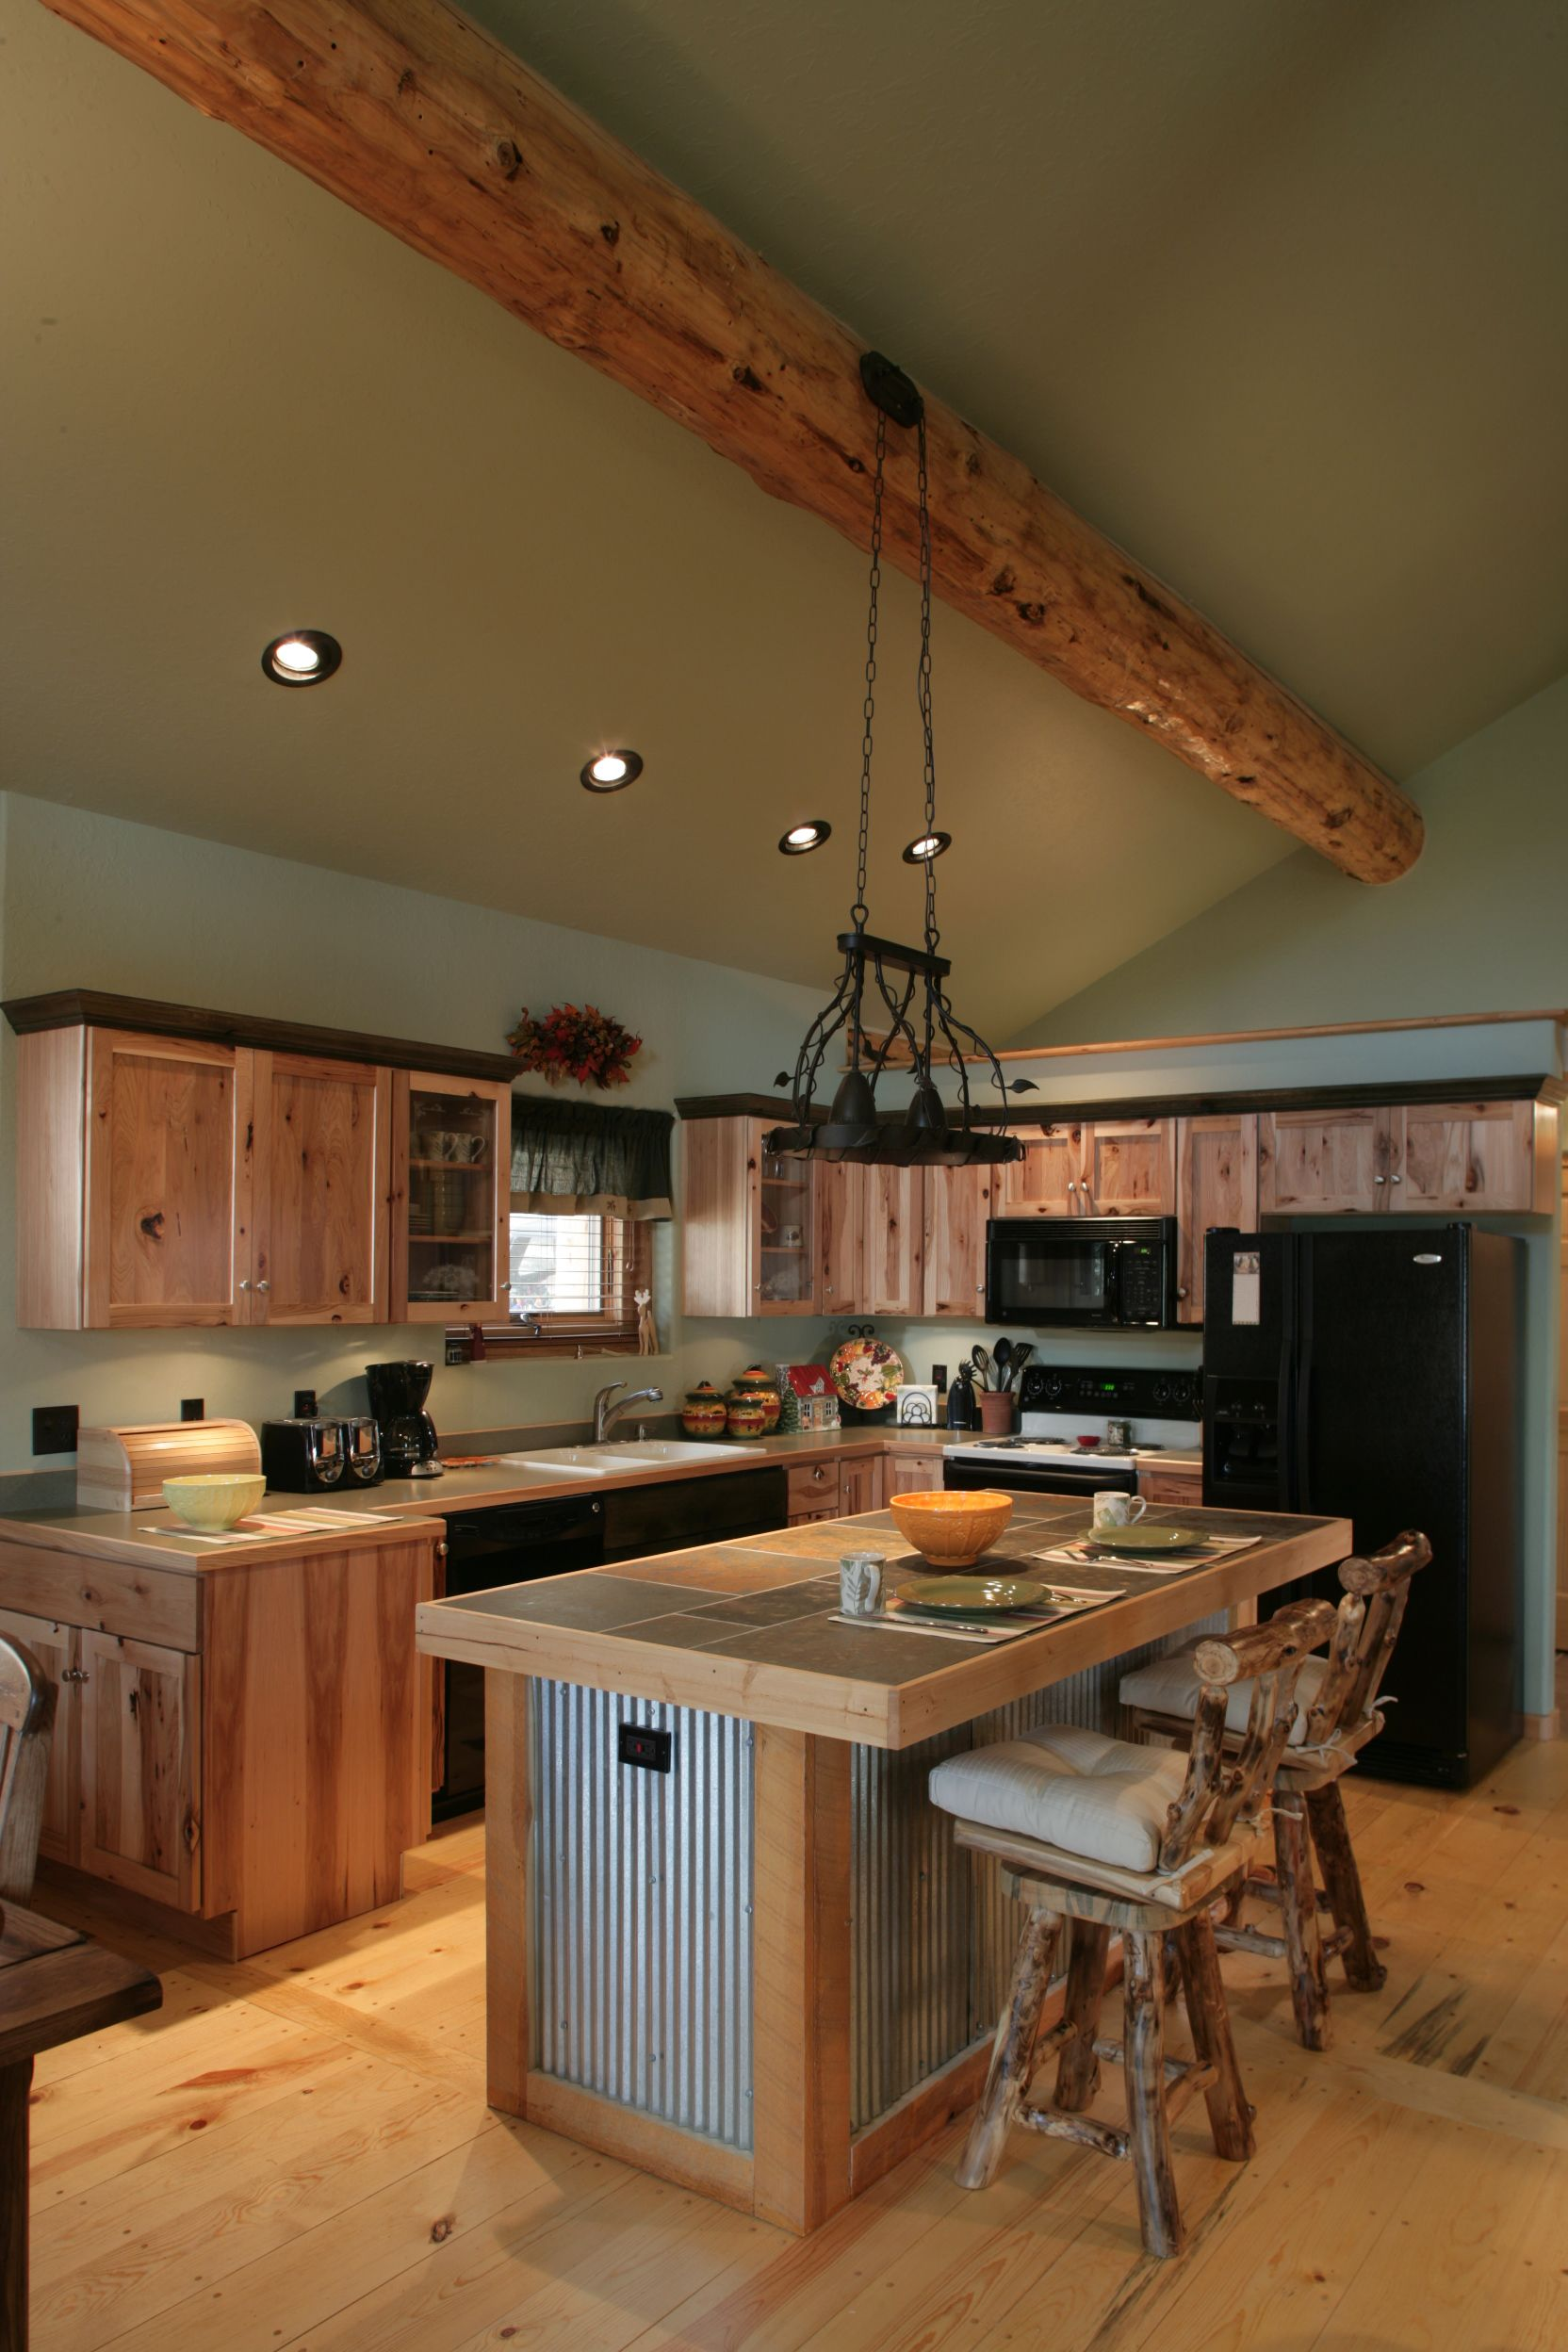 Vv0n1270 With Images Rustic Kitchen Island Log Cabin Kitchens